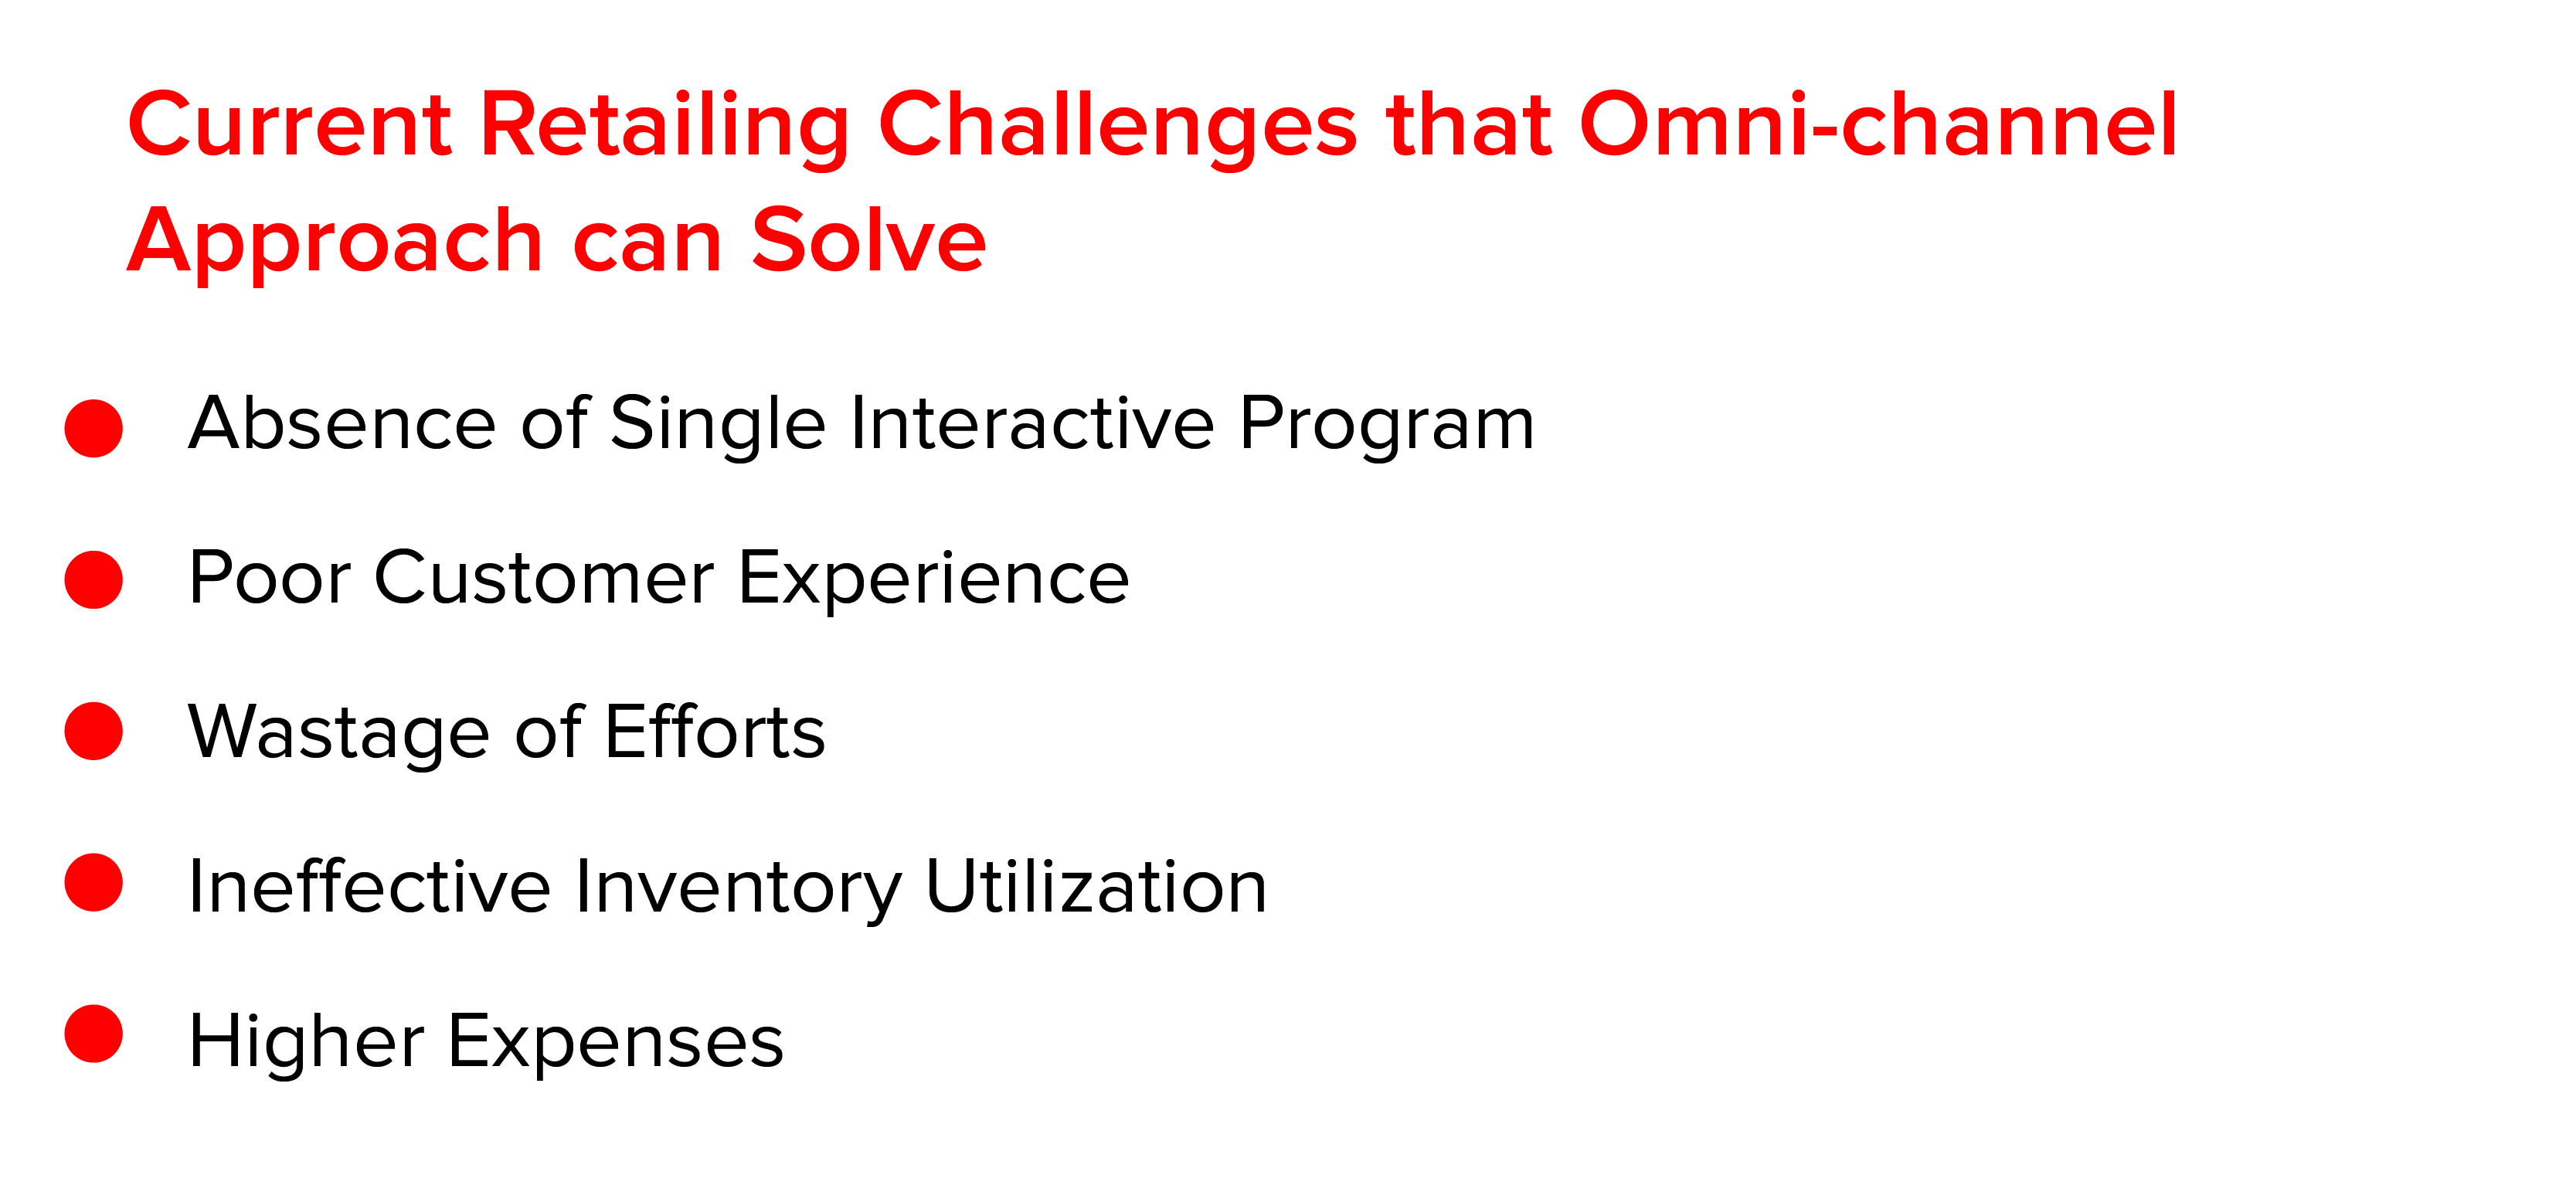 Current Retailing Challenges that Omni-channel Approach can Solve